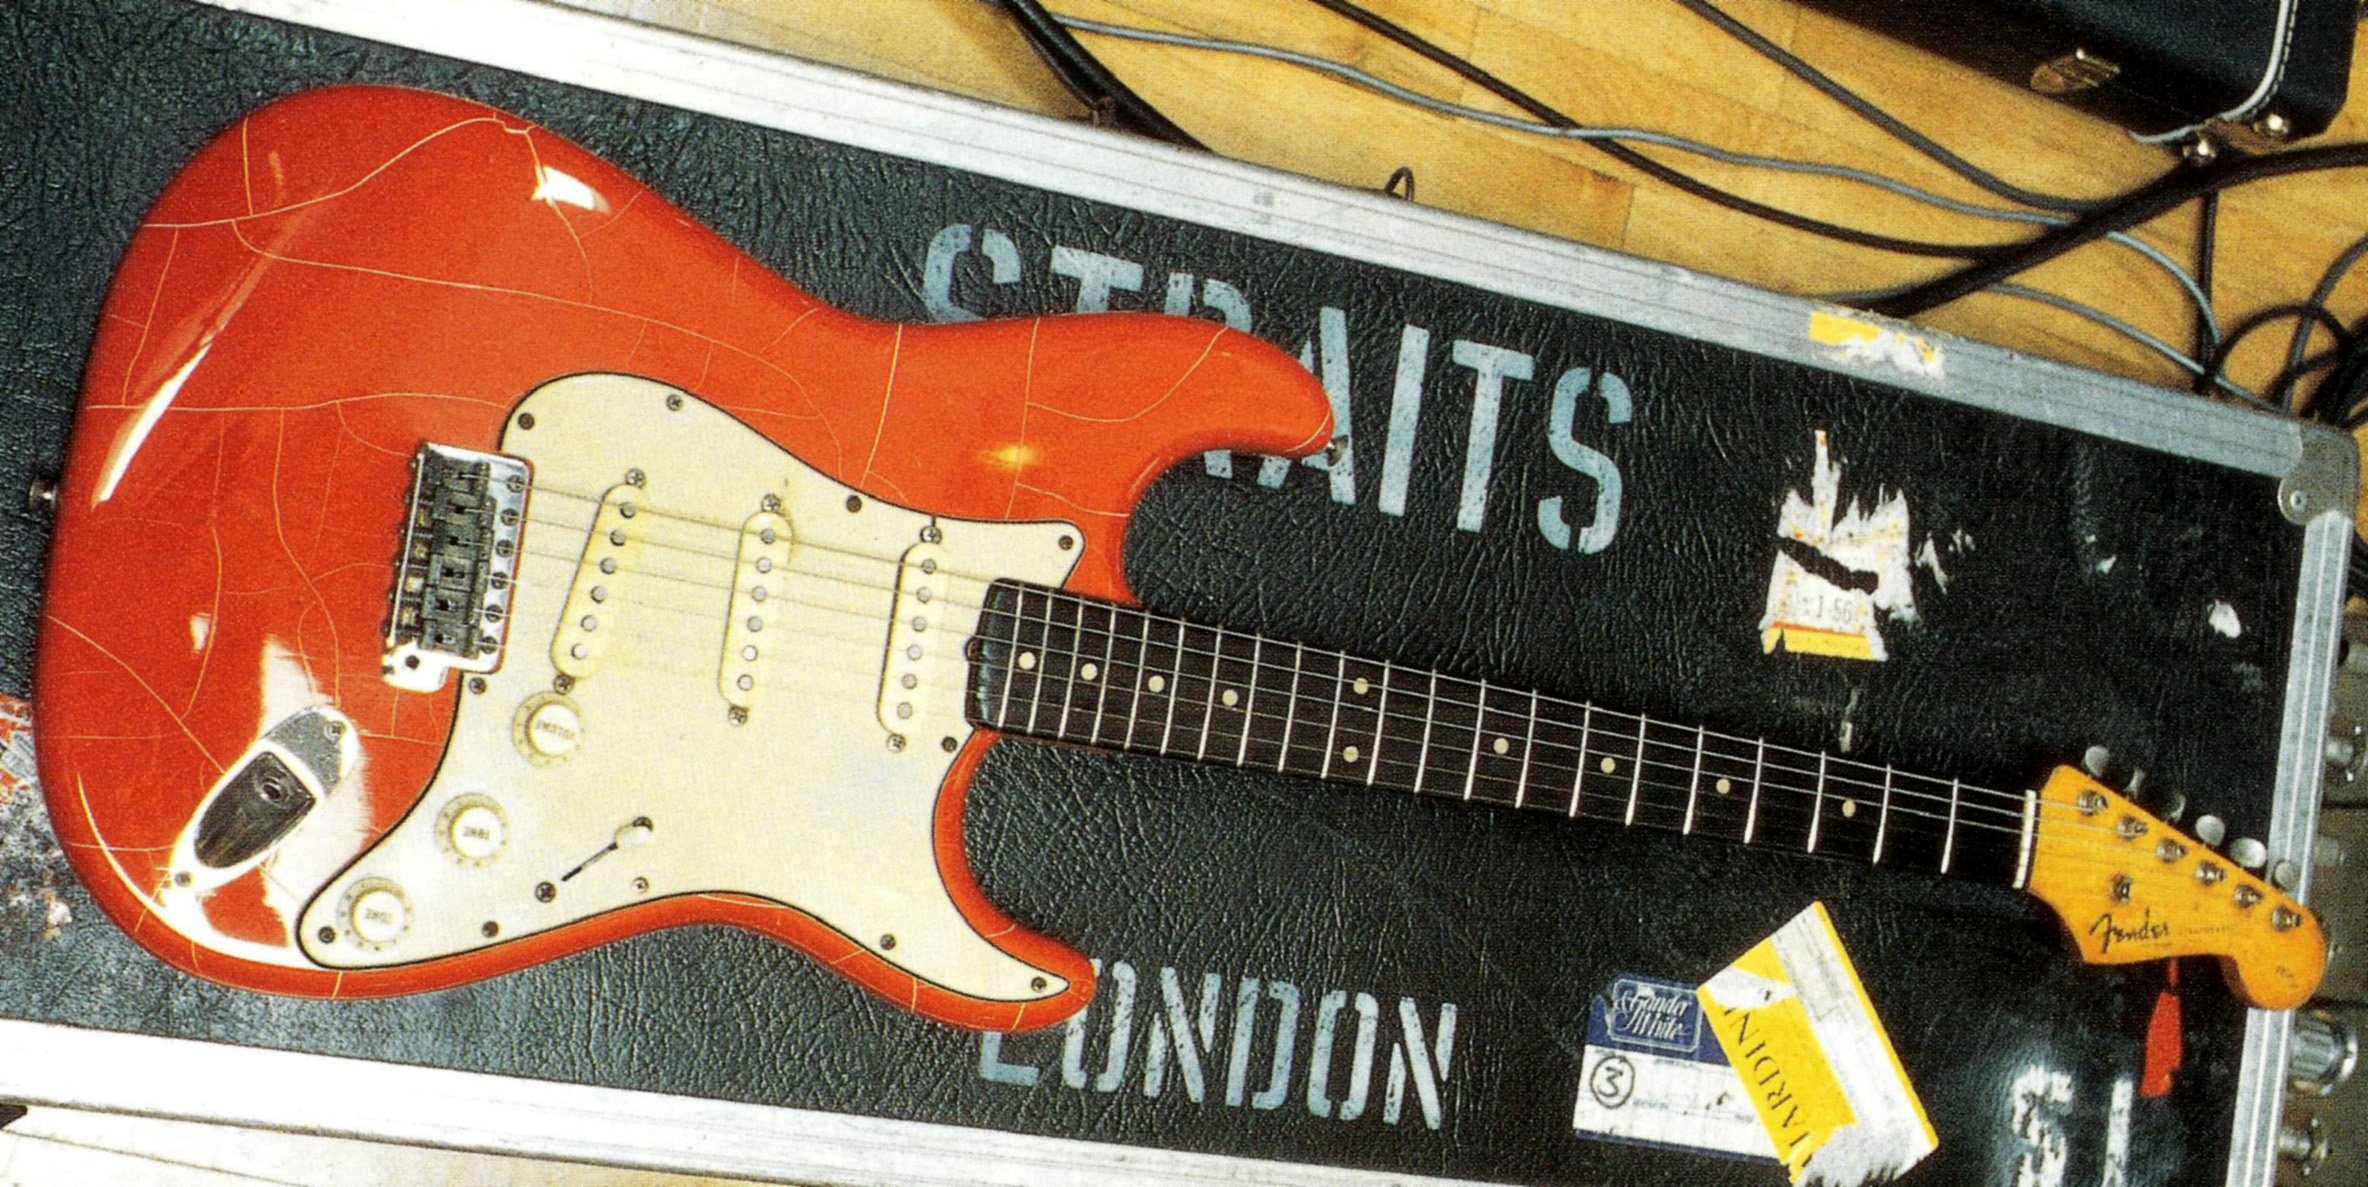 Fender Stratocaster 1961 Mark Knopfler Guitar Site 1977 Wiring Diagram 5 Way Switch Pictures